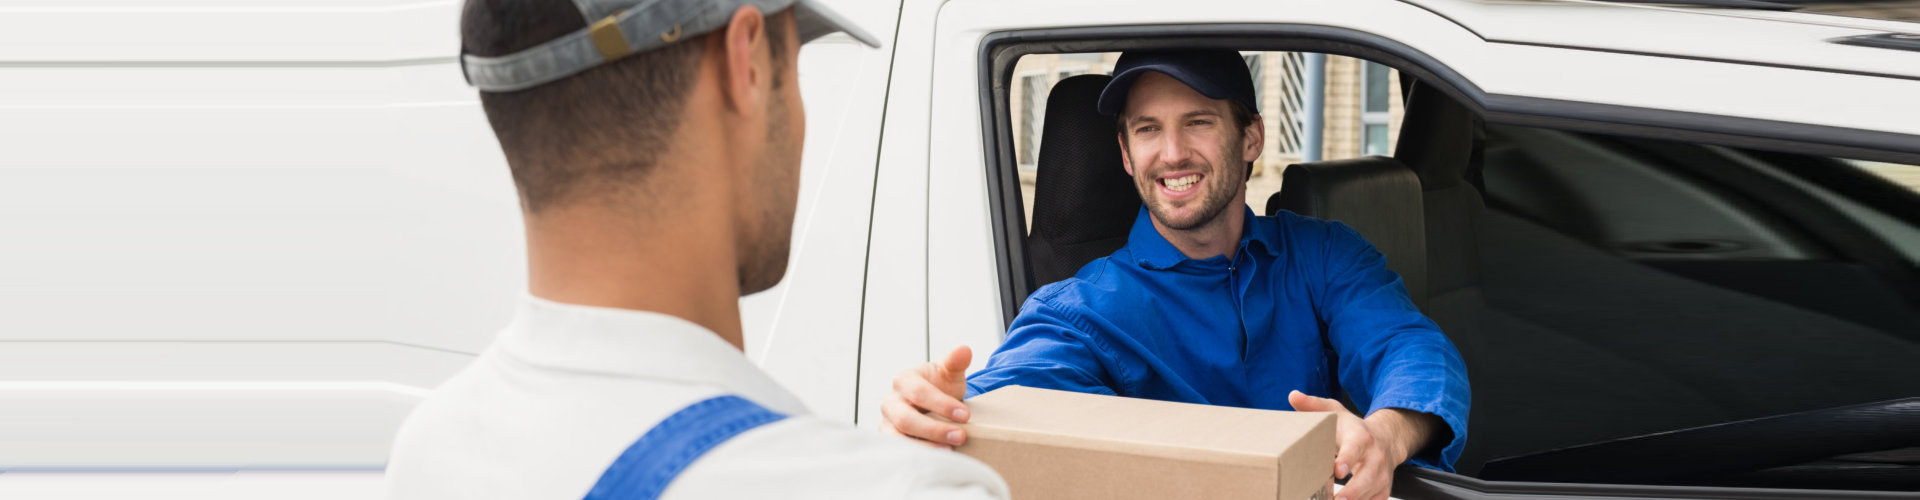 man handing parcel to another man